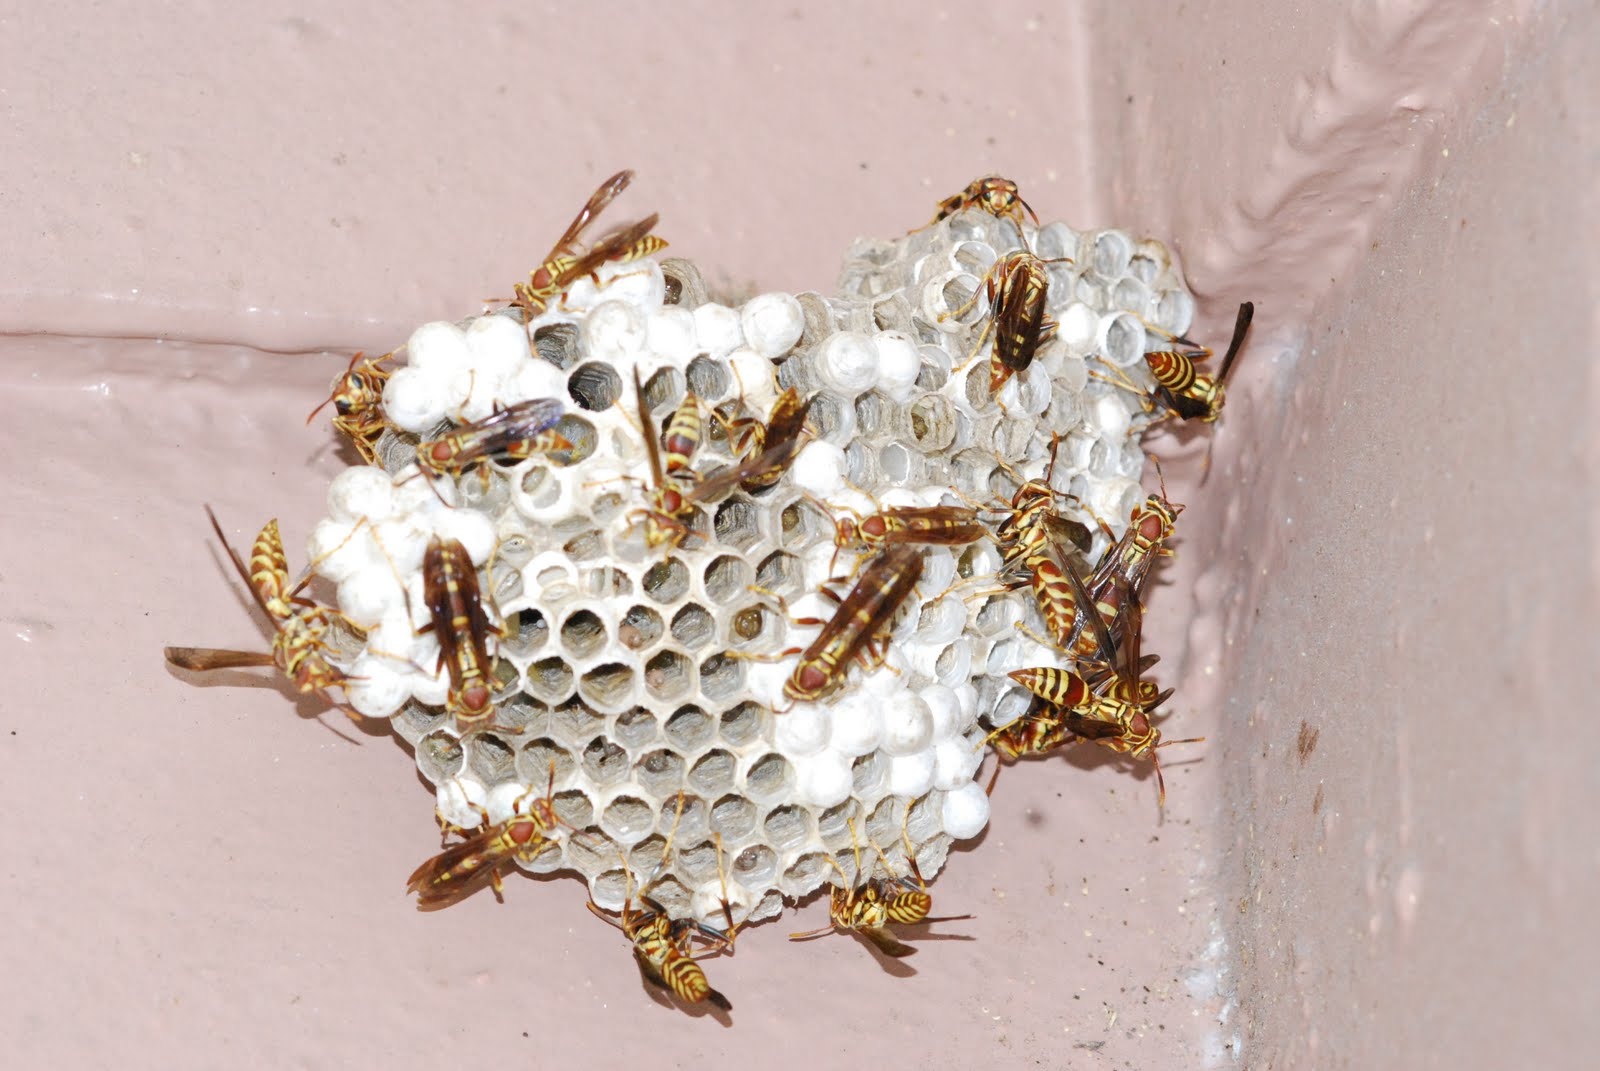 paper wasp nest removal Removing a wasp nest  items needed for safe removal of wasp nest  i have had paper wasp nests outside my doors for years with no problems.